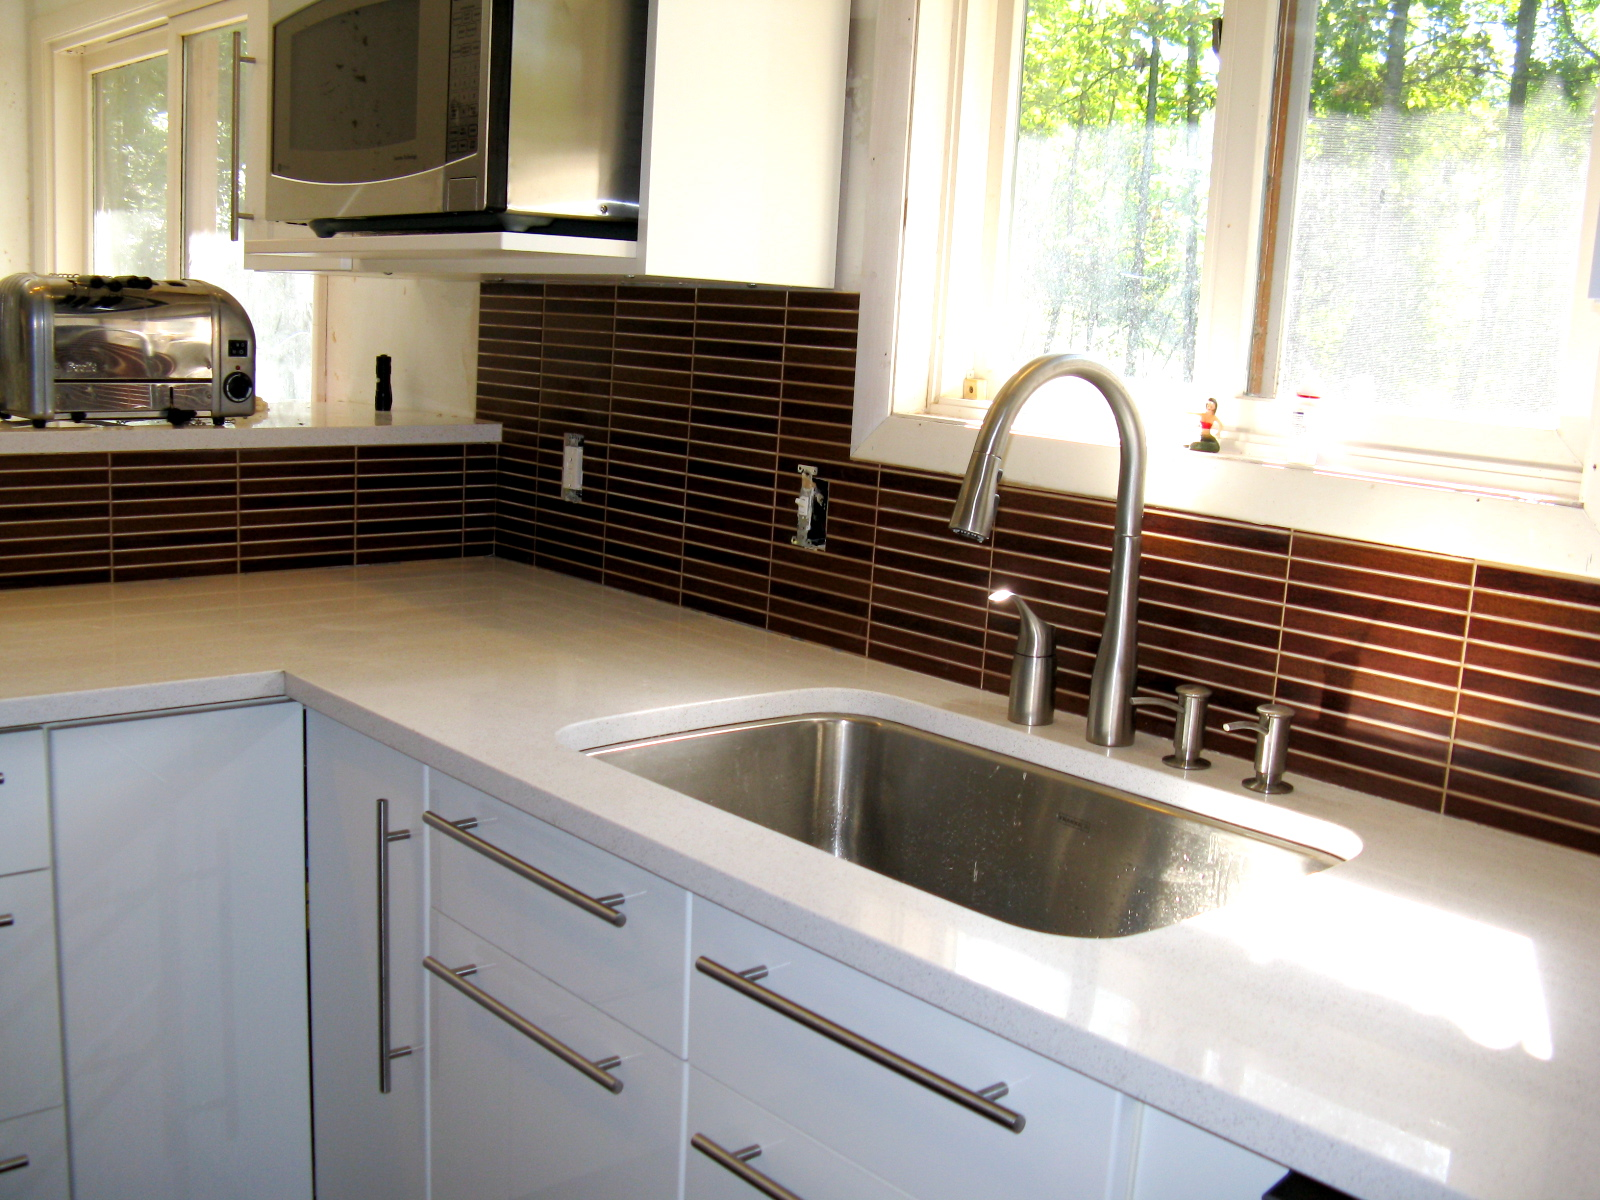 brutally counter a block ikea review countertops butcher honest of countertop our kitchen